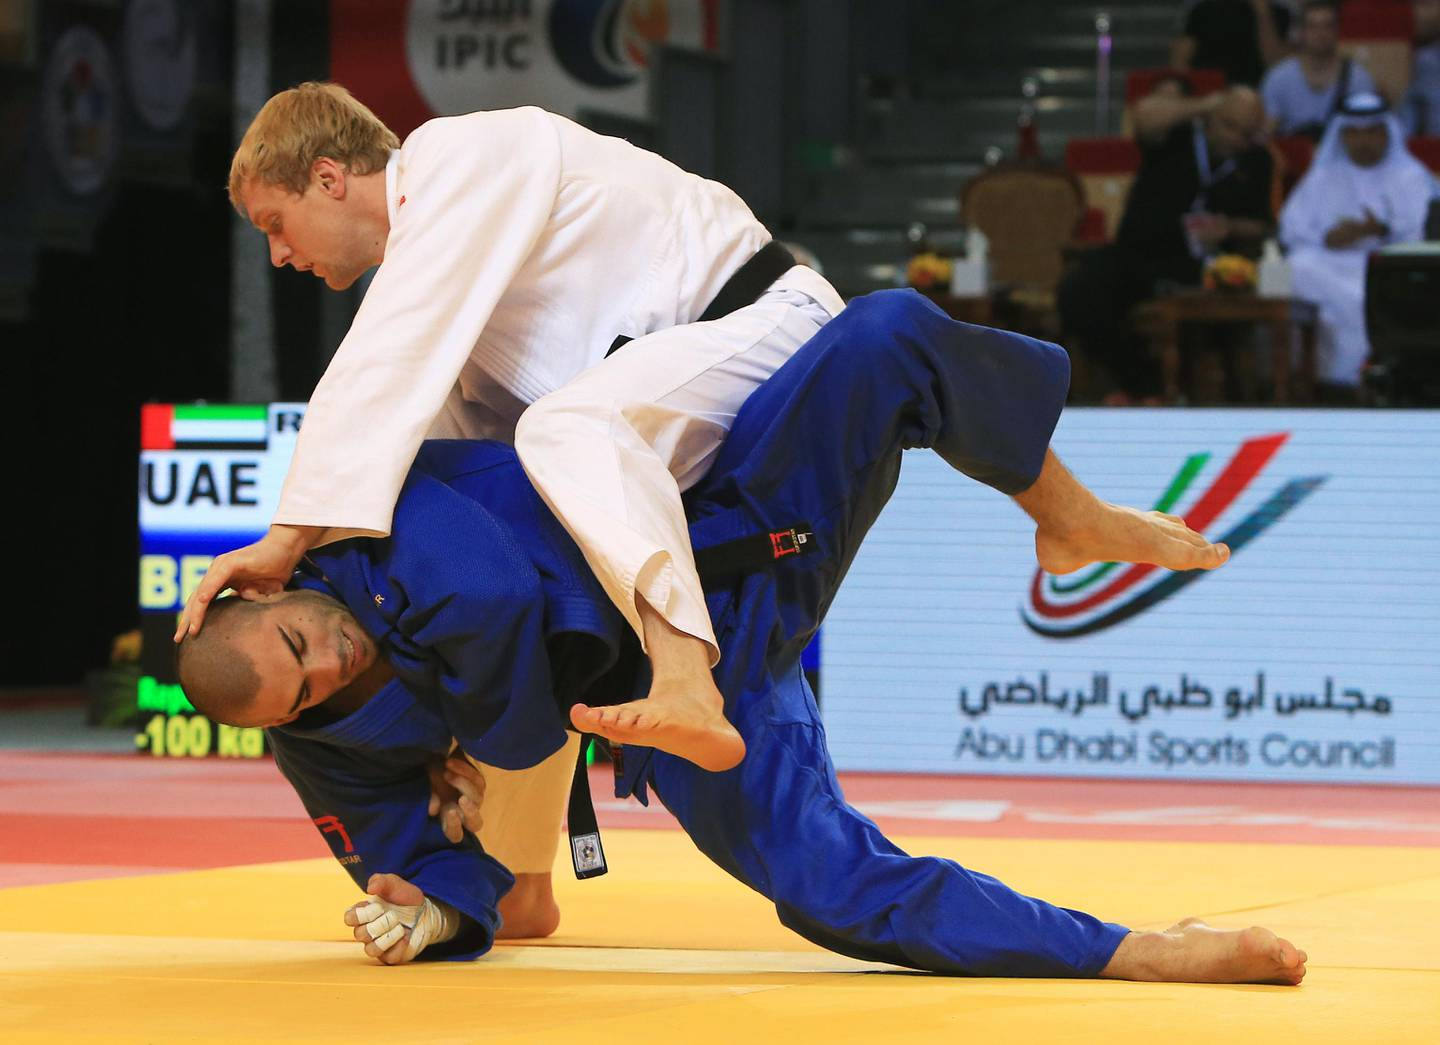 ABU DHABI - UNITED ARAB EMIRATES - 02OCT2014 - UAE's  Ivan Remarenco (in white) and Belgium's Toma Nikiforov fights in quarter- final in -100 kilograms category during Judo Grand Slam, Abu Dhabi 2014, organised International Judo Federation yesterday at FGB Arena at the Zayed Sports City in Abu Dhabi. Ravindranath K / The National (to go with Amith story for Sports)